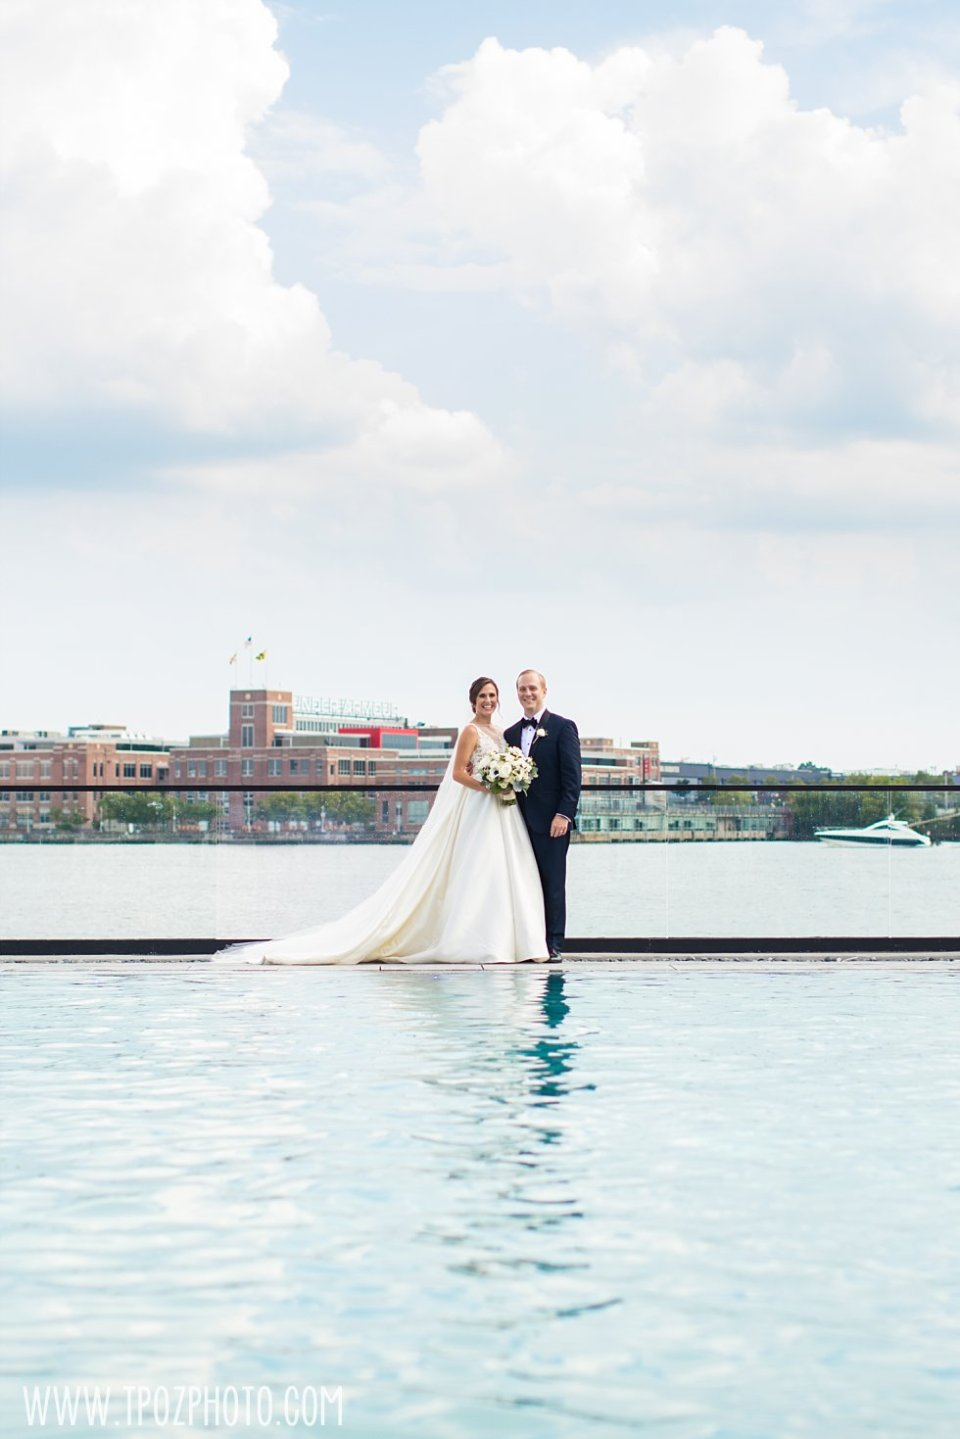 Sagamore Pendry Pool wedding photos bride & groom •  tPoz Photography • www.tpozphoto.com